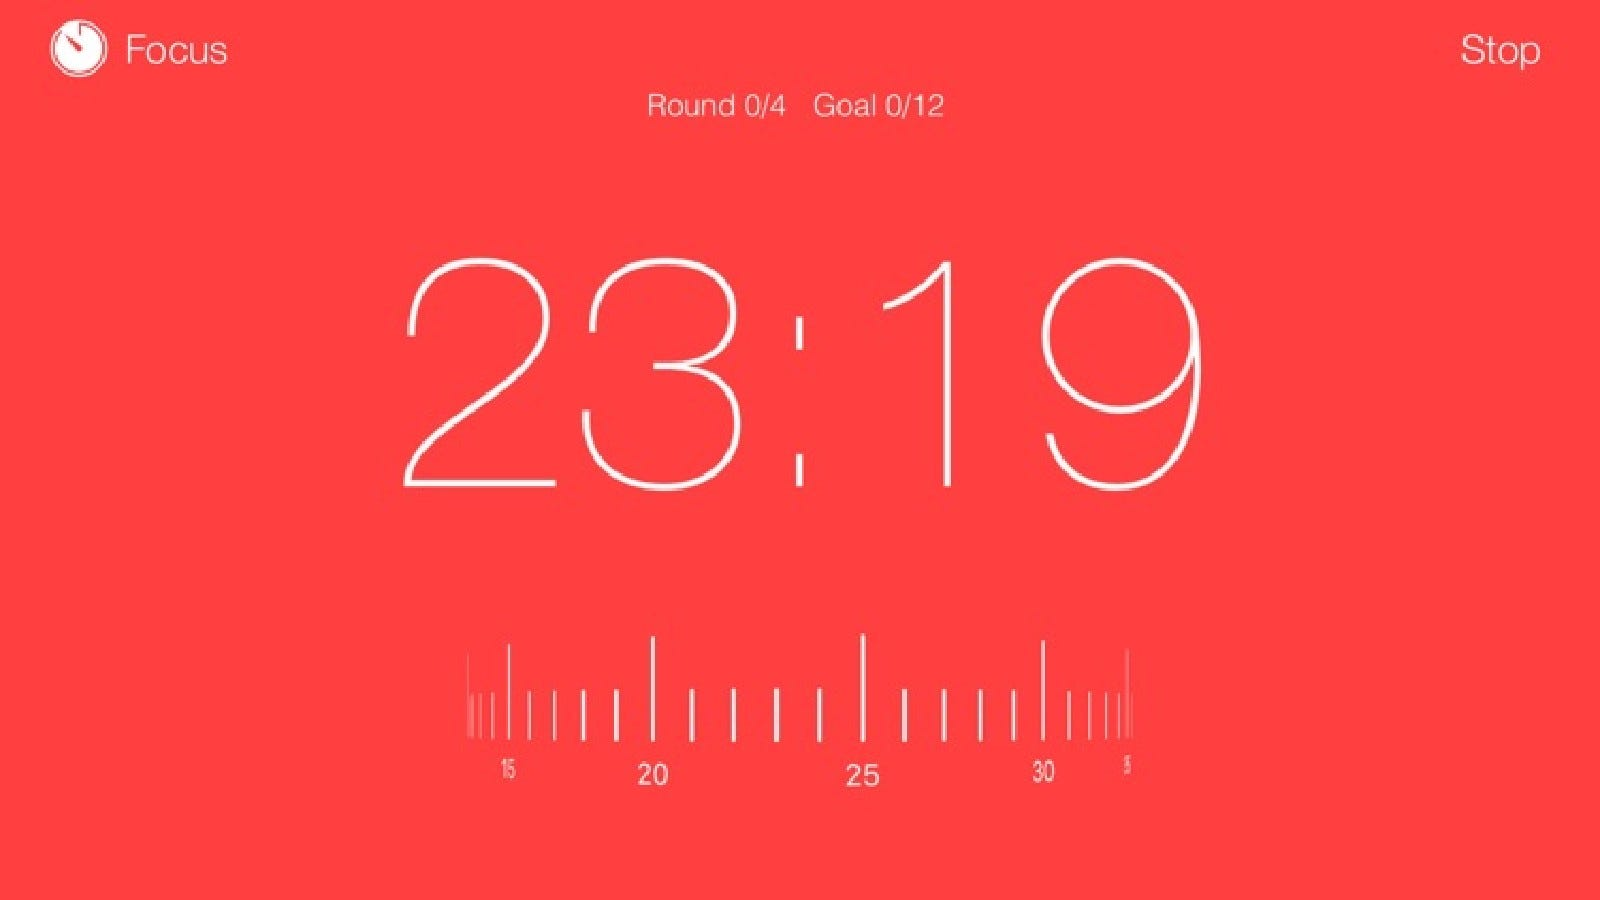 A work-session timer in the Focus Keeper app.